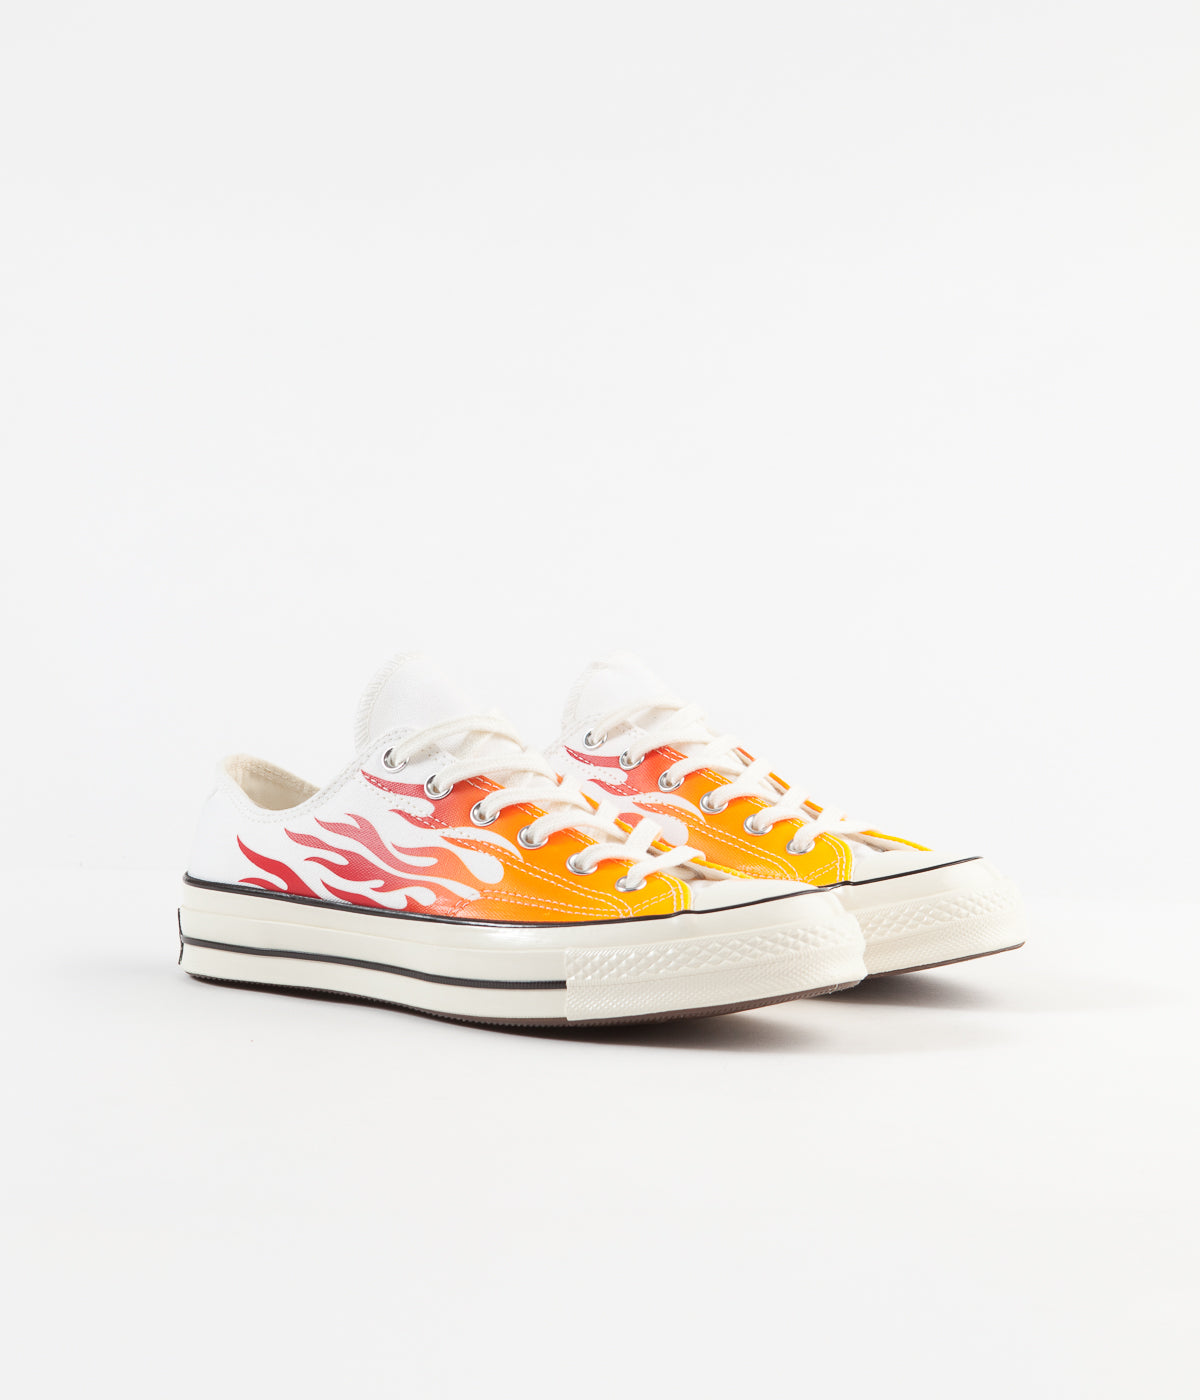 Converse CTAS 70's Ox Archive Print Remixed Shoes - White / Enamel Red / Bold Mandarin